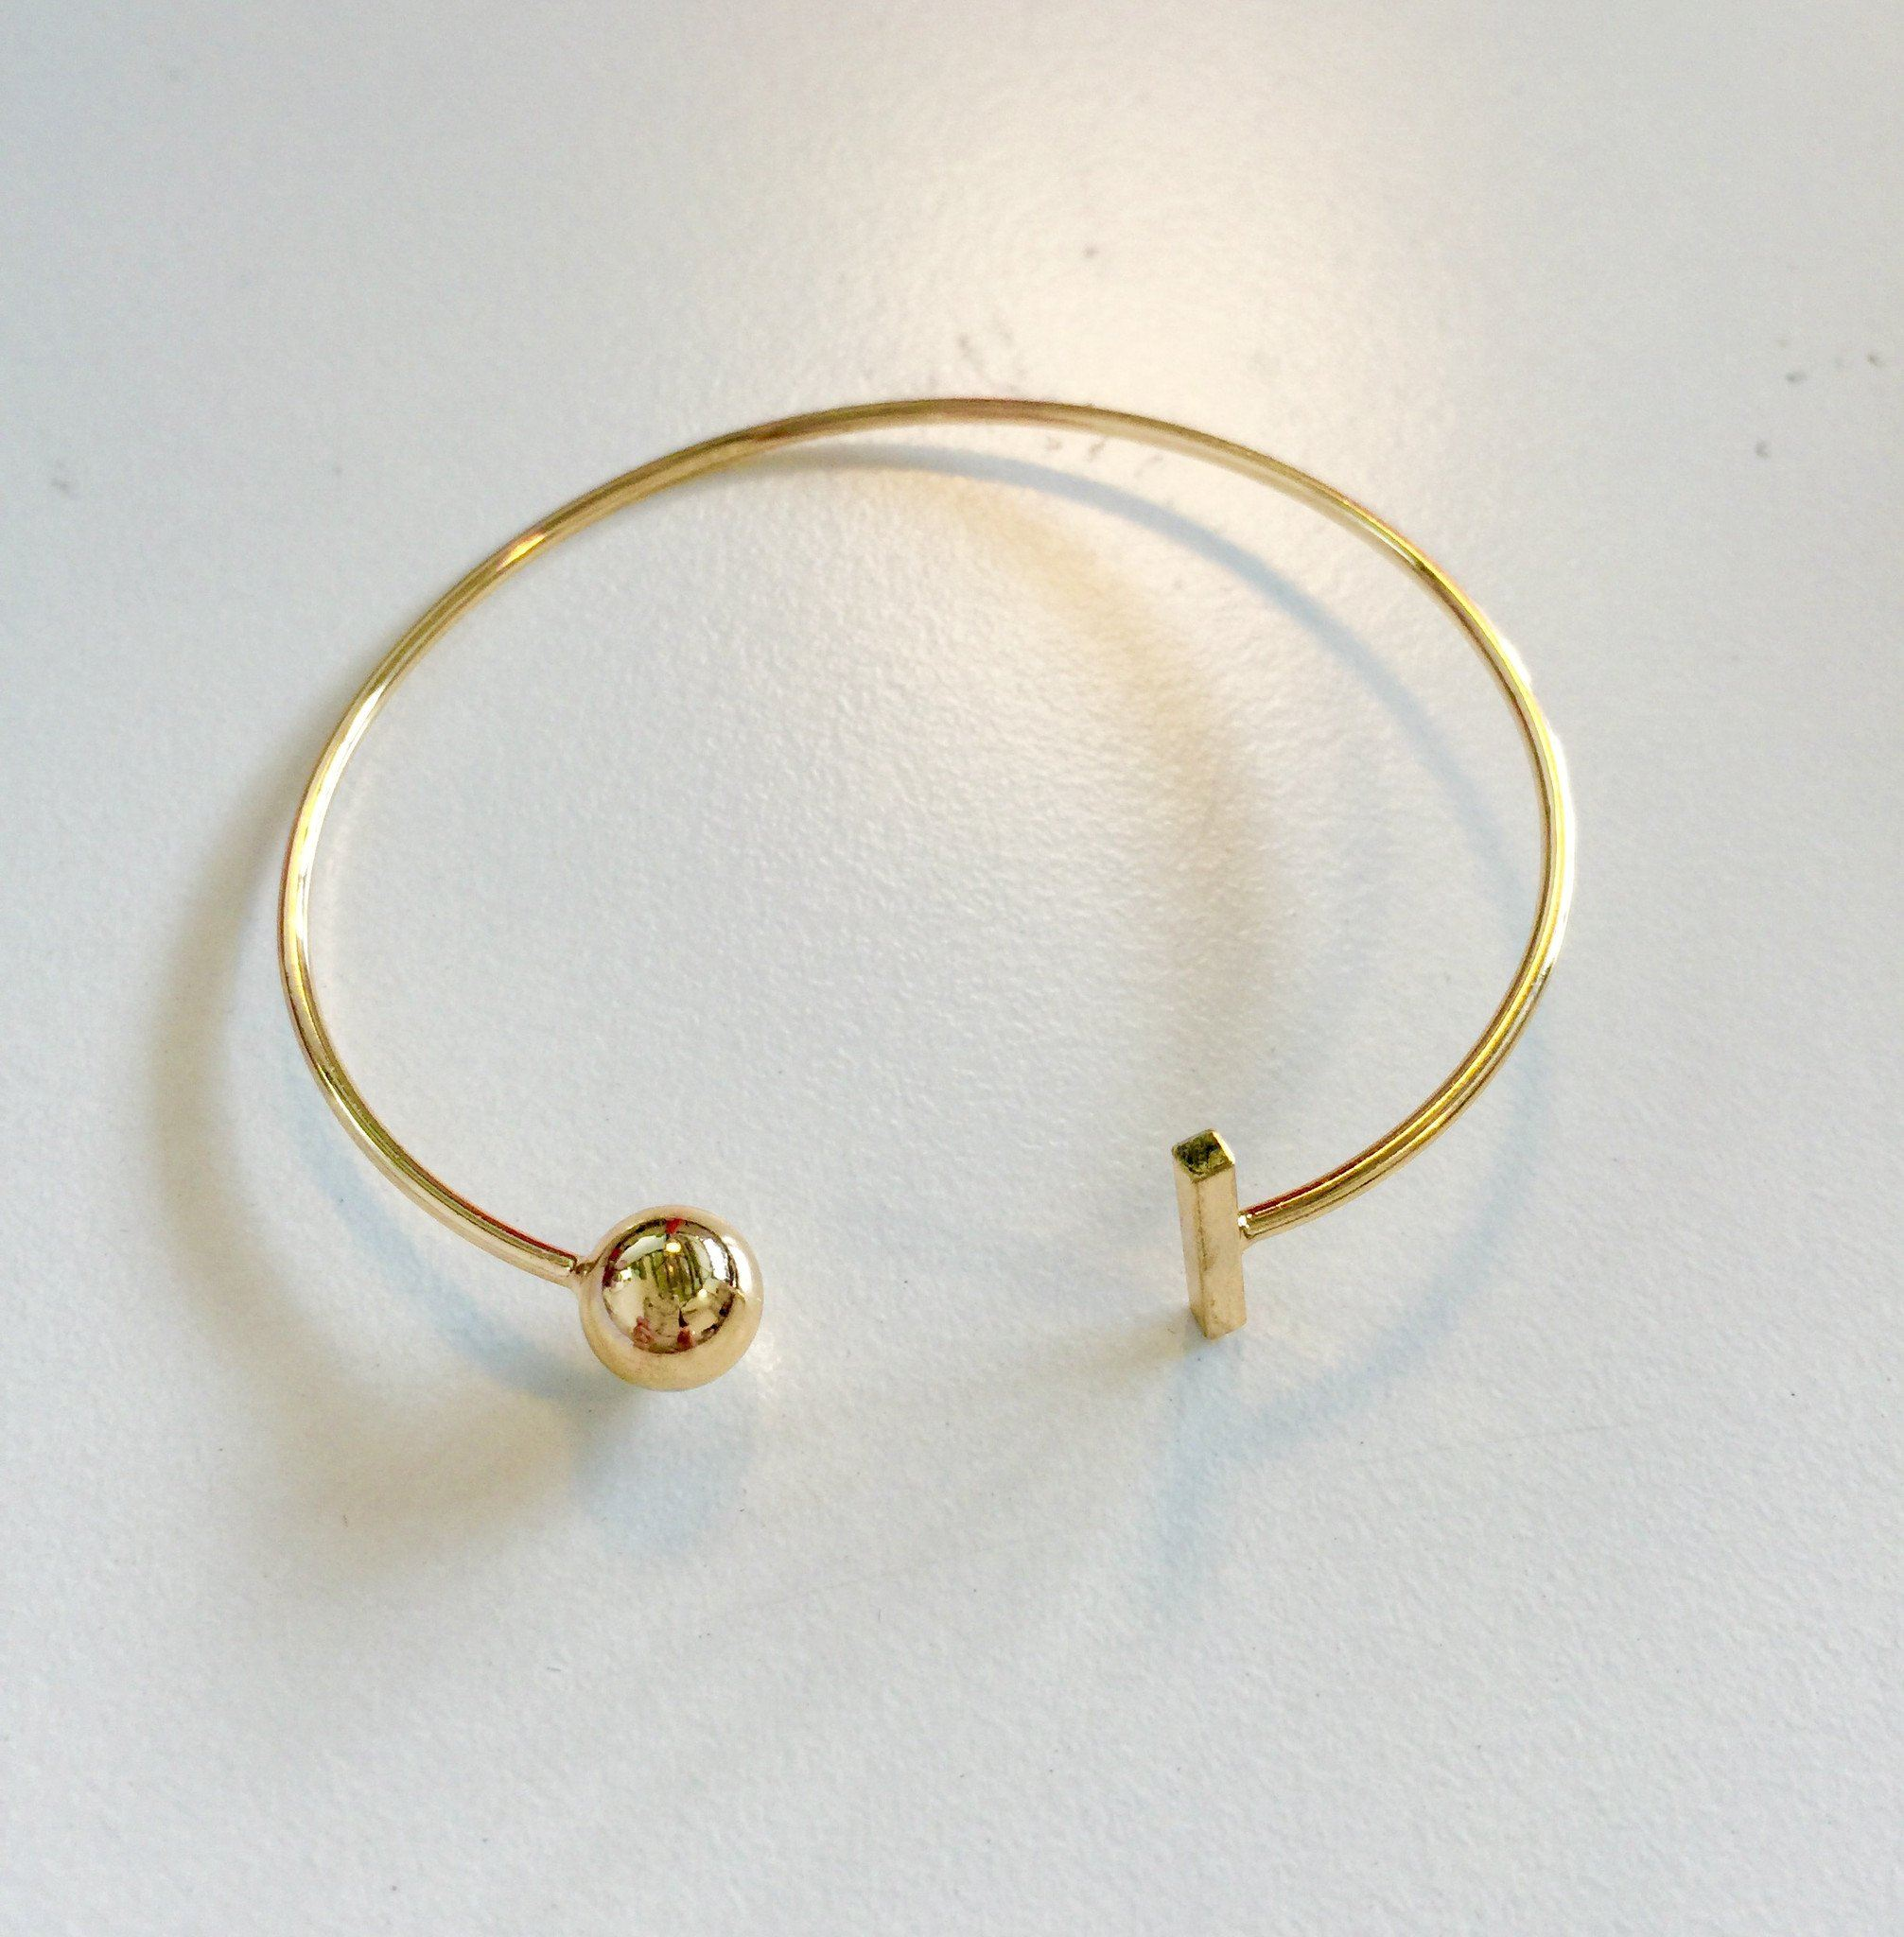 Desiree 10 Gold Bracelet - Bracelets - Bacteria Secret - Naiise